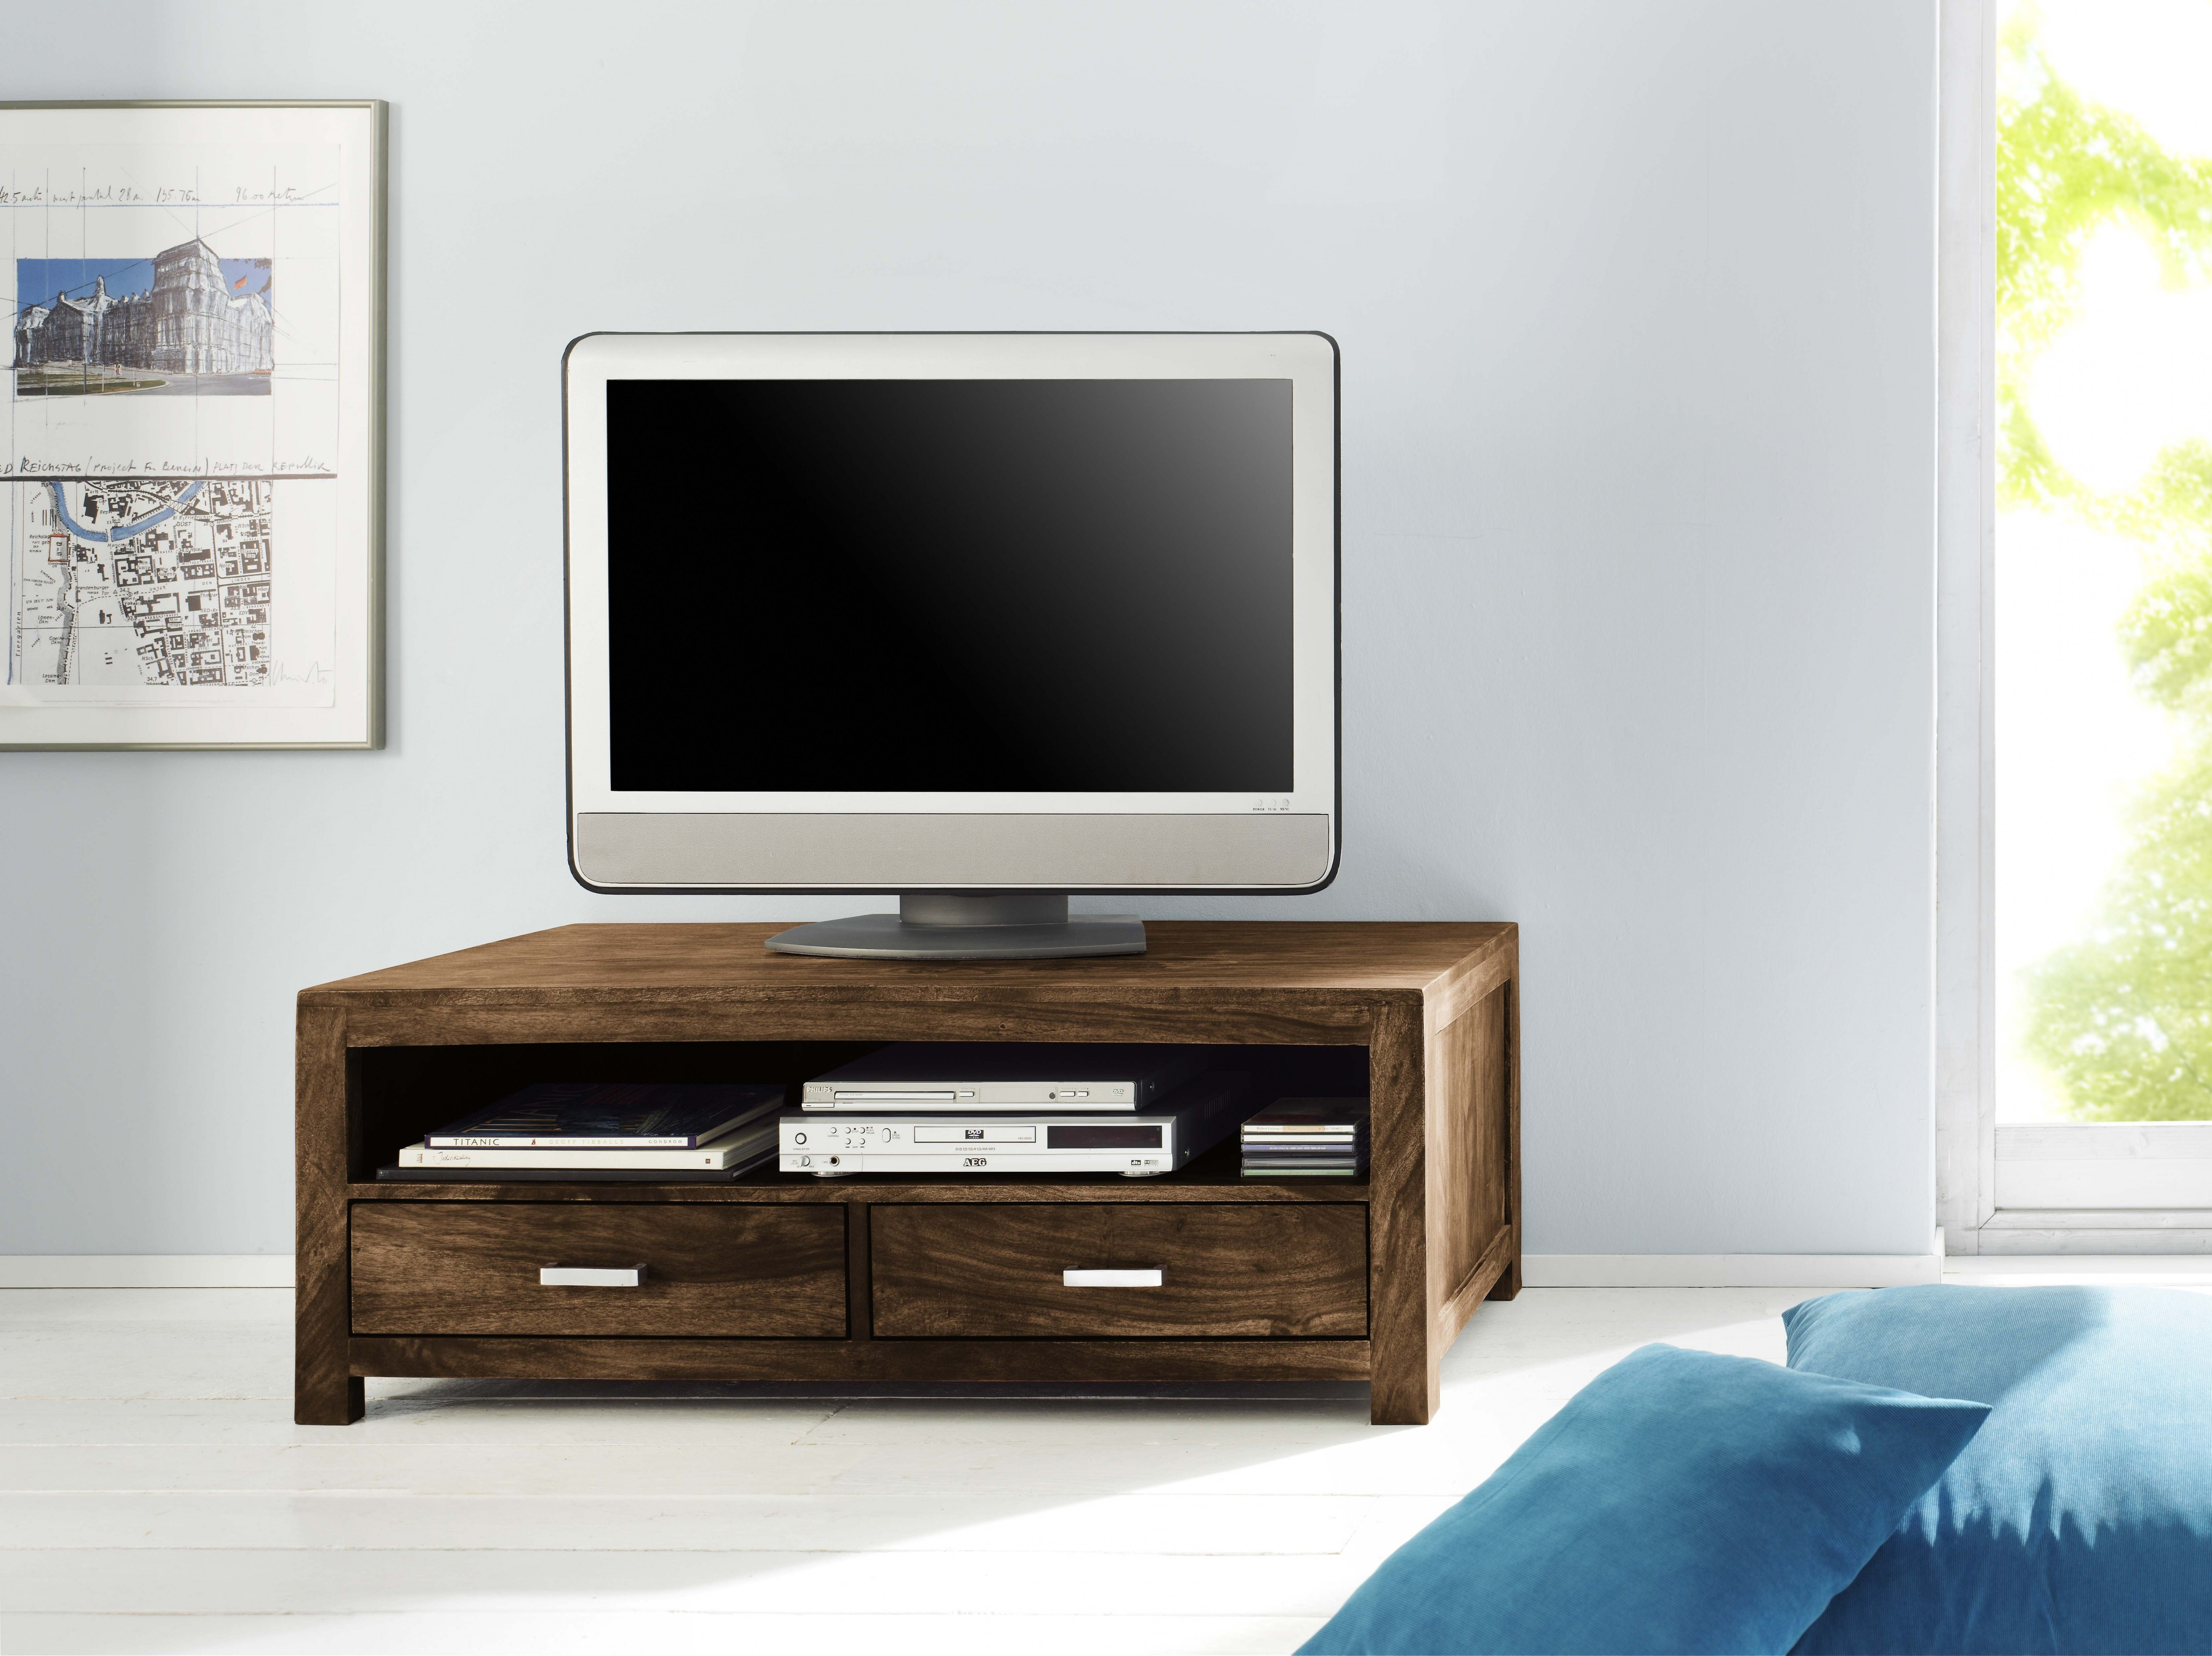 tv tisch m bel einebinsenweisheit. Black Bedroom Furniture Sets. Home Design Ideas